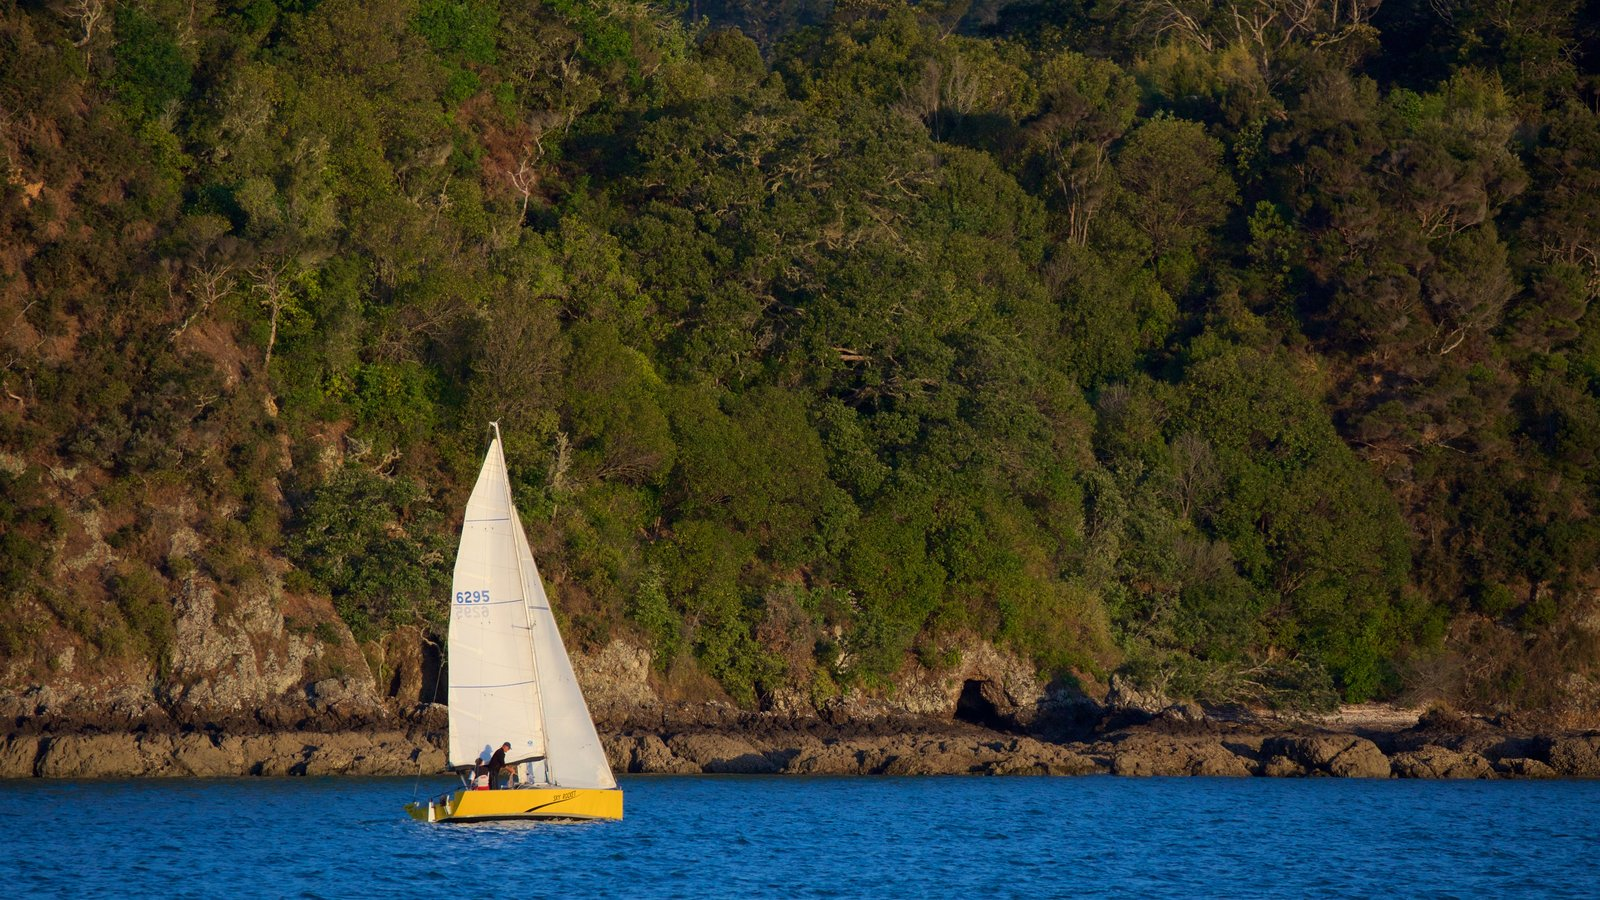 Russell featuring rocky coastline, sailing and a bay or harbor